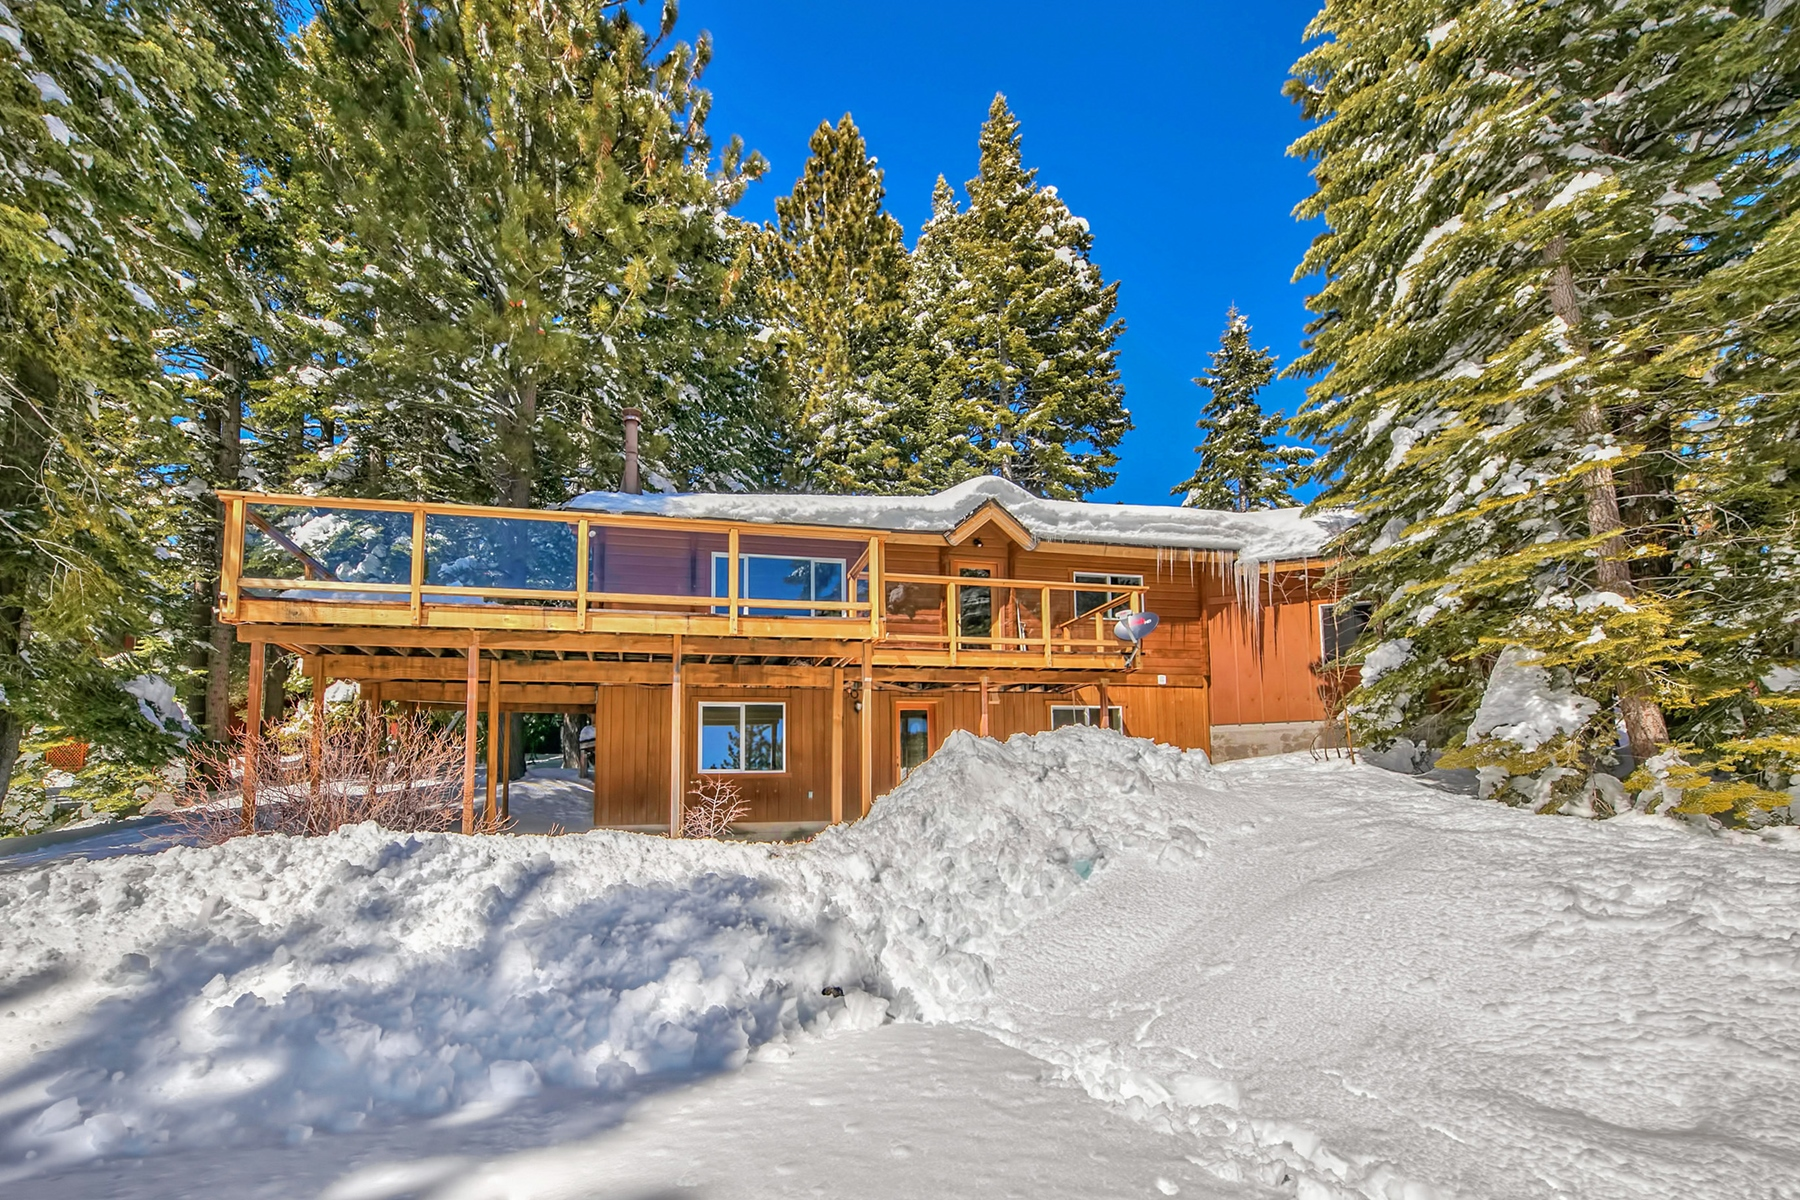 Property for Active at 528 Joseph Court, Tahoe City, CA 528 Joseph Court Tahoe City, California 96145 United States